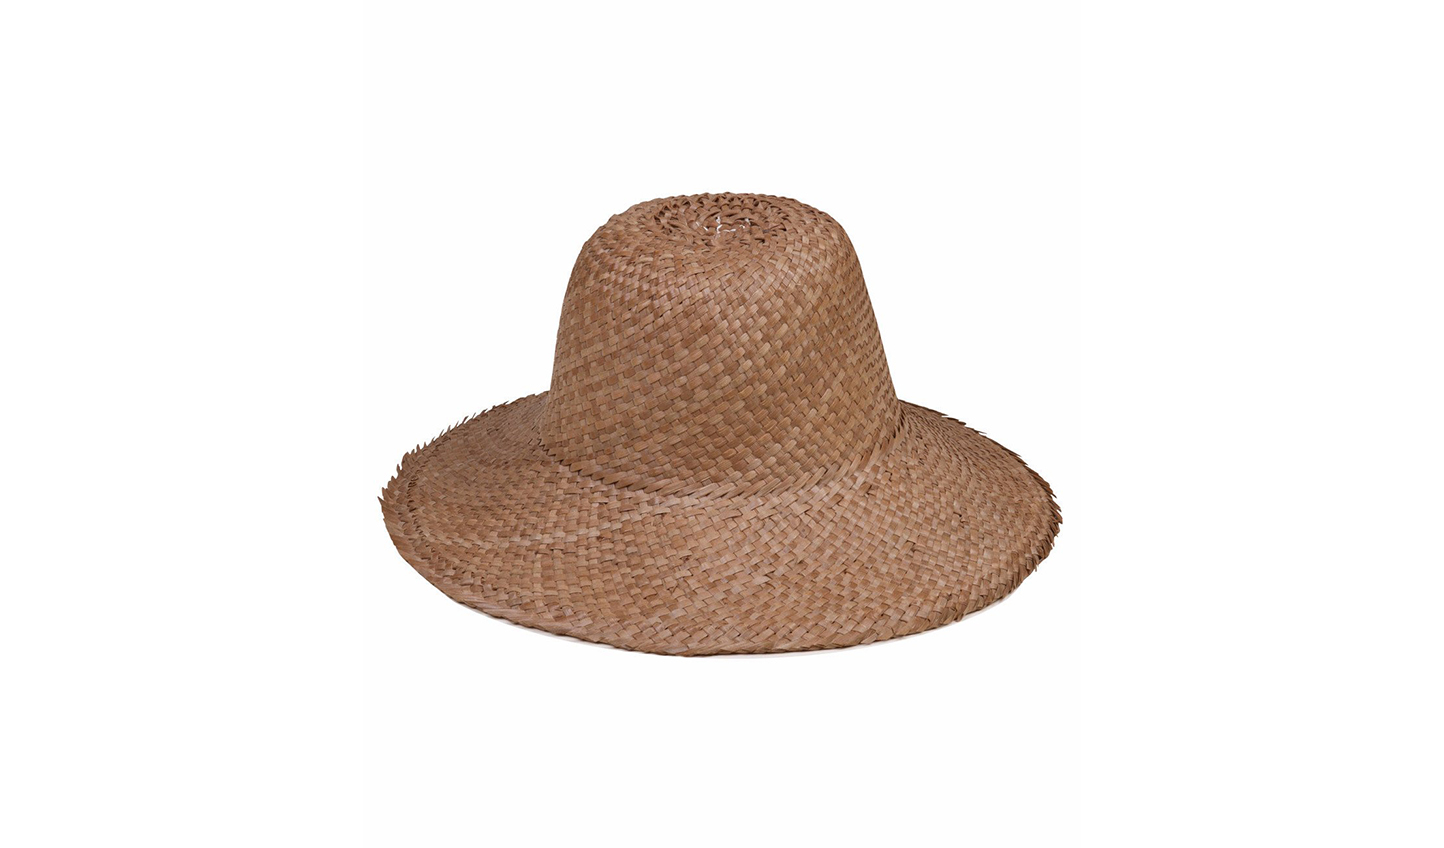 The SunDowner Straw Hat Summer